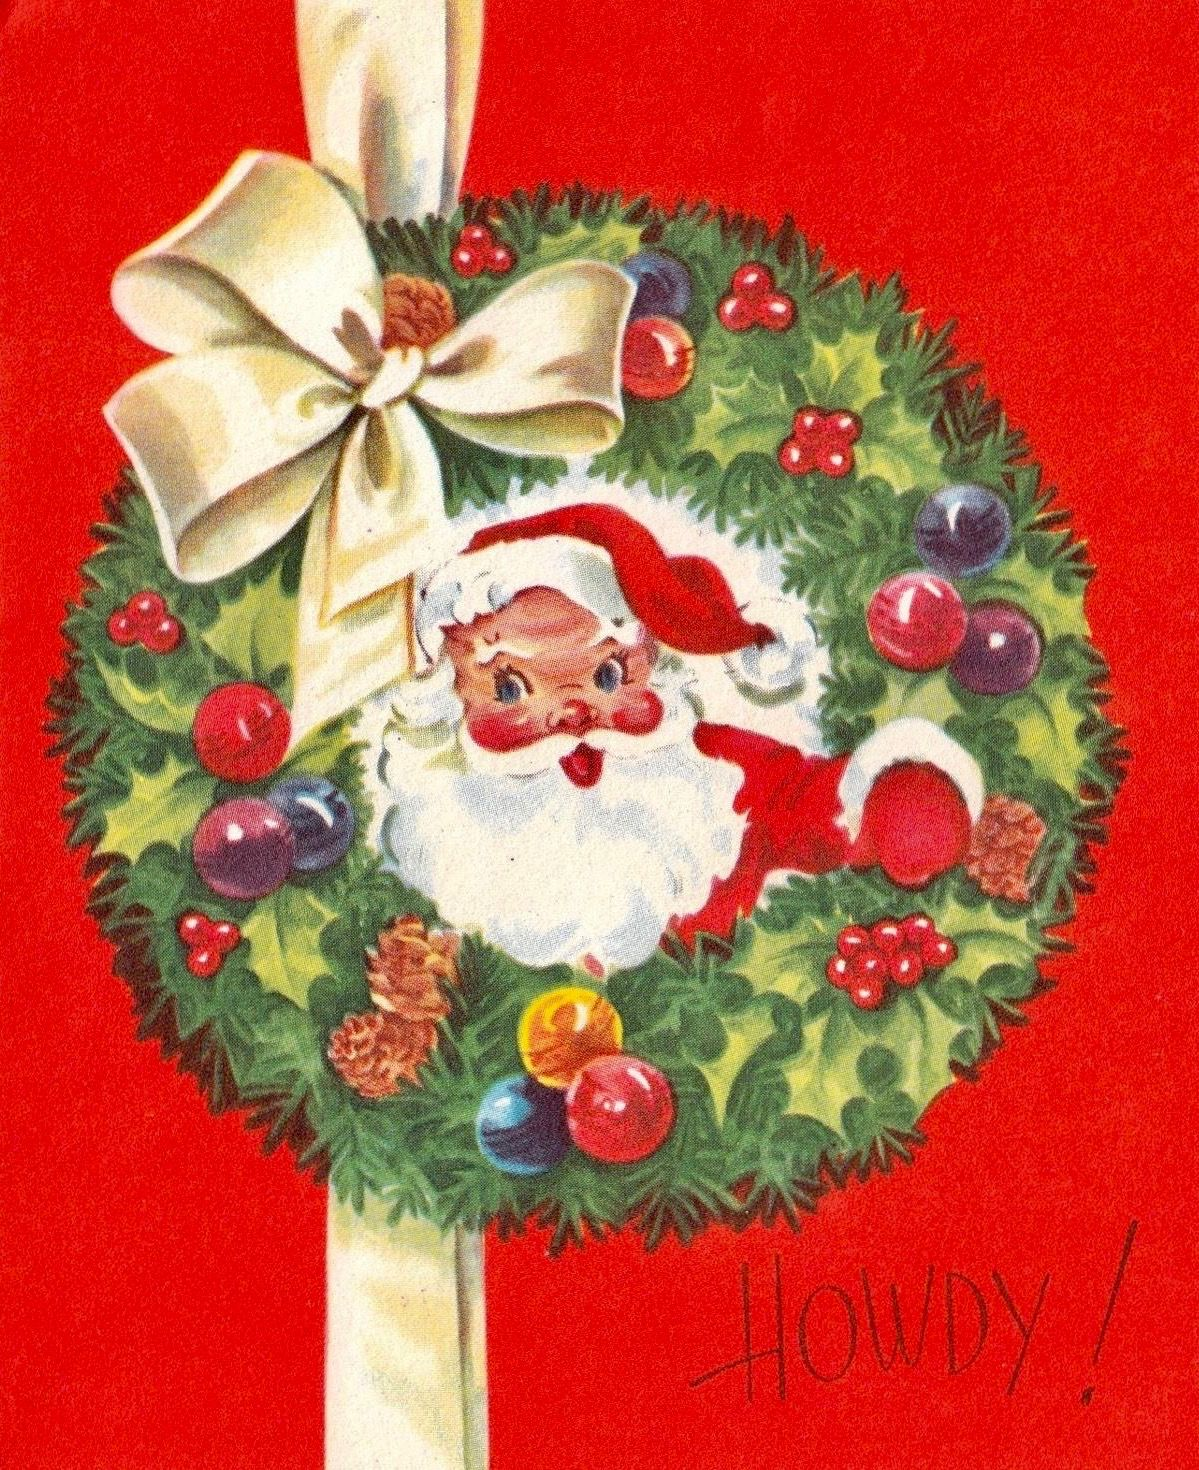 vintage card with wreath